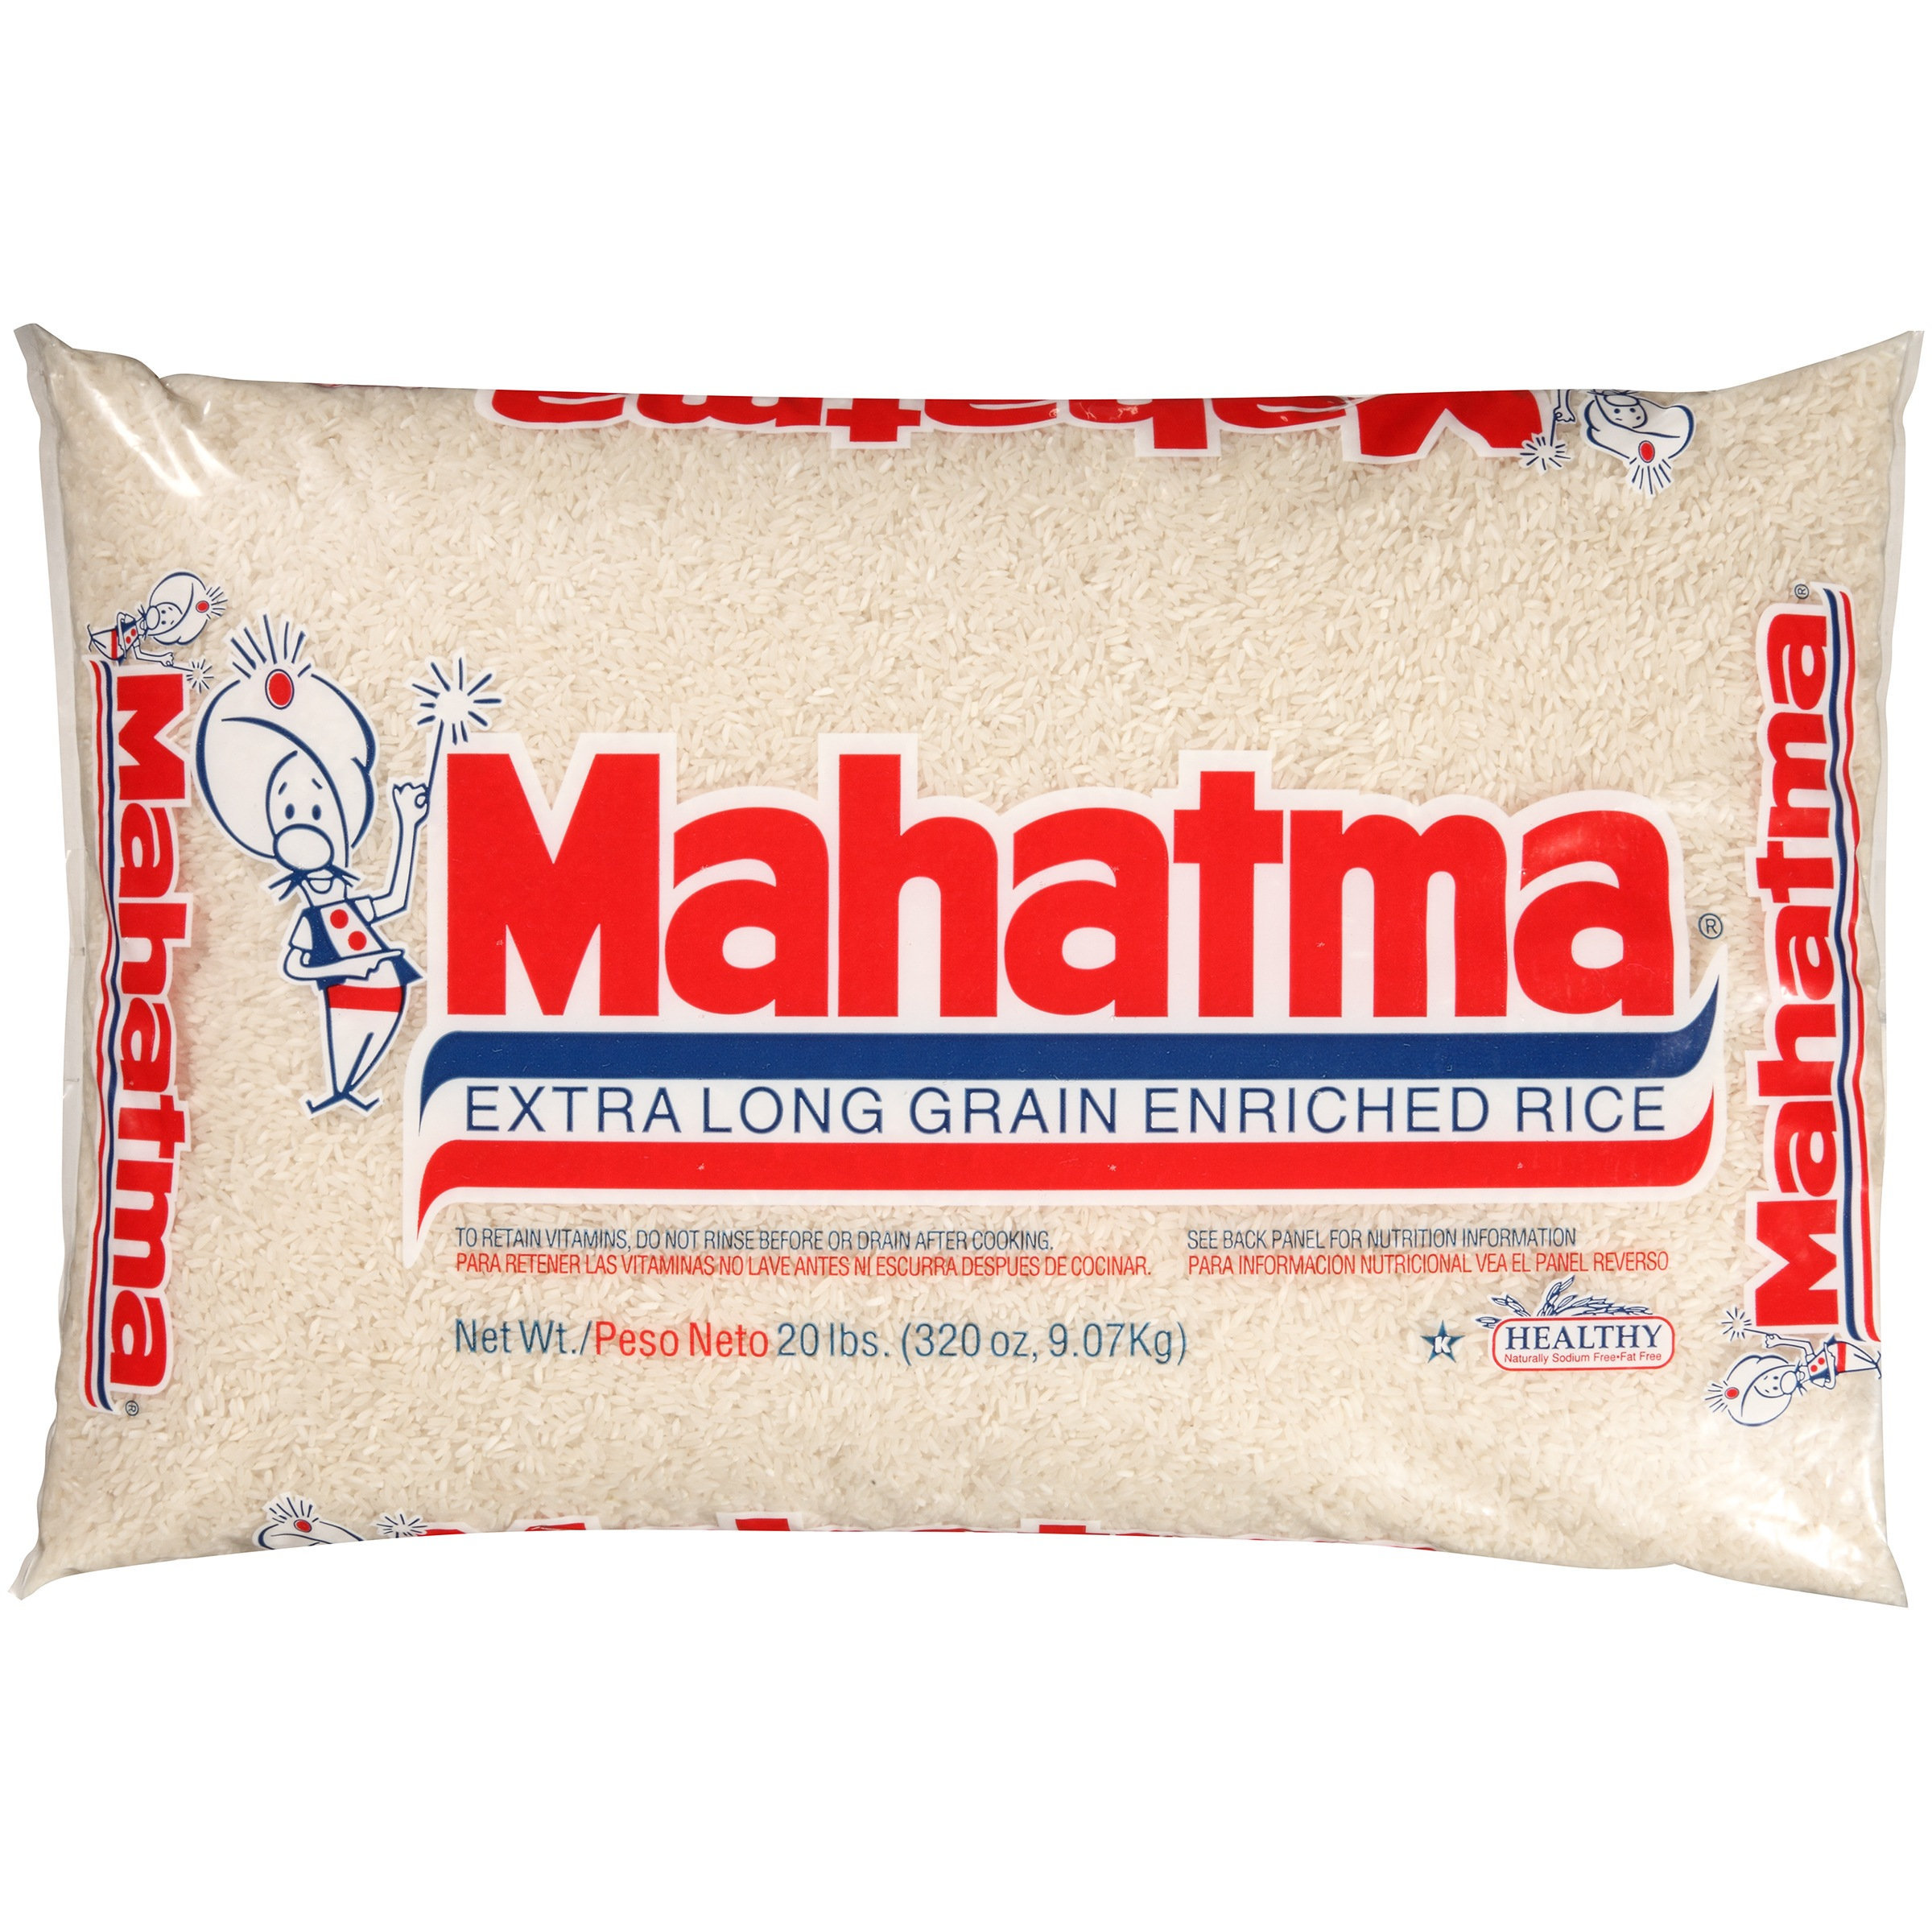 Mahatma Extra Long Grain Enriched Rice, 20 lb